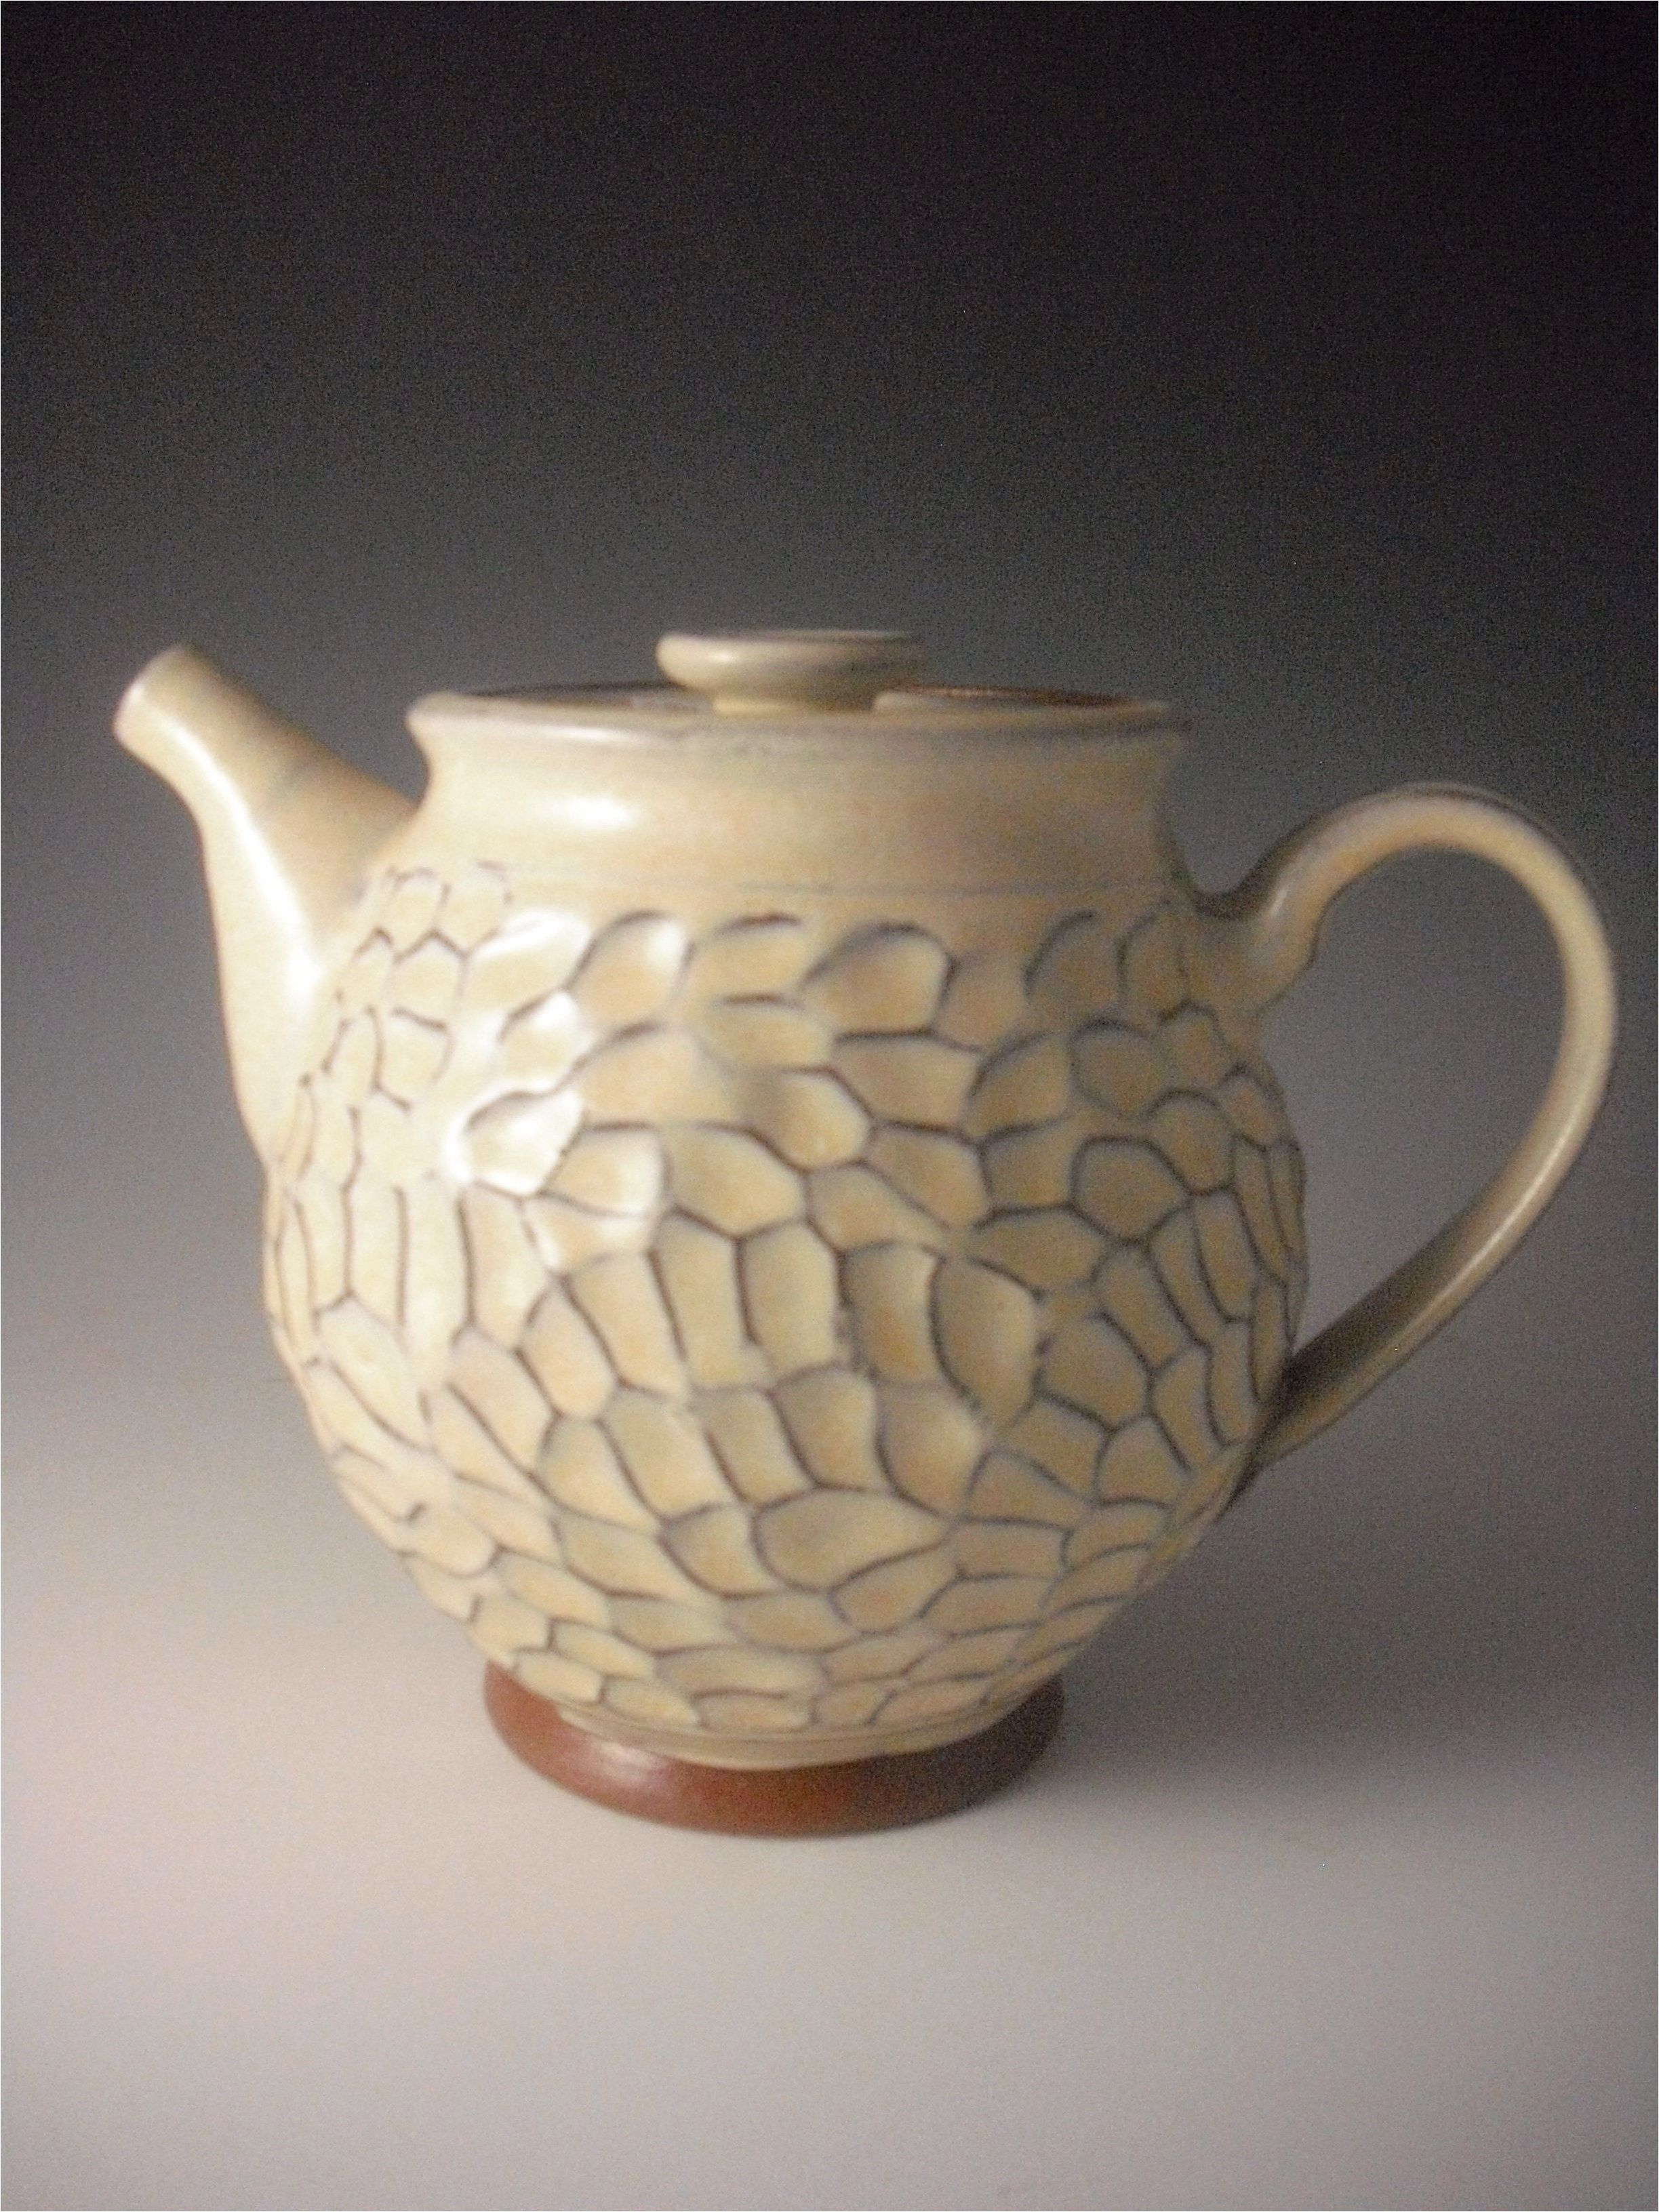 Hand thrown earthenware tea pot #CeramicDesign - Click the image to continue reading... #teapotset